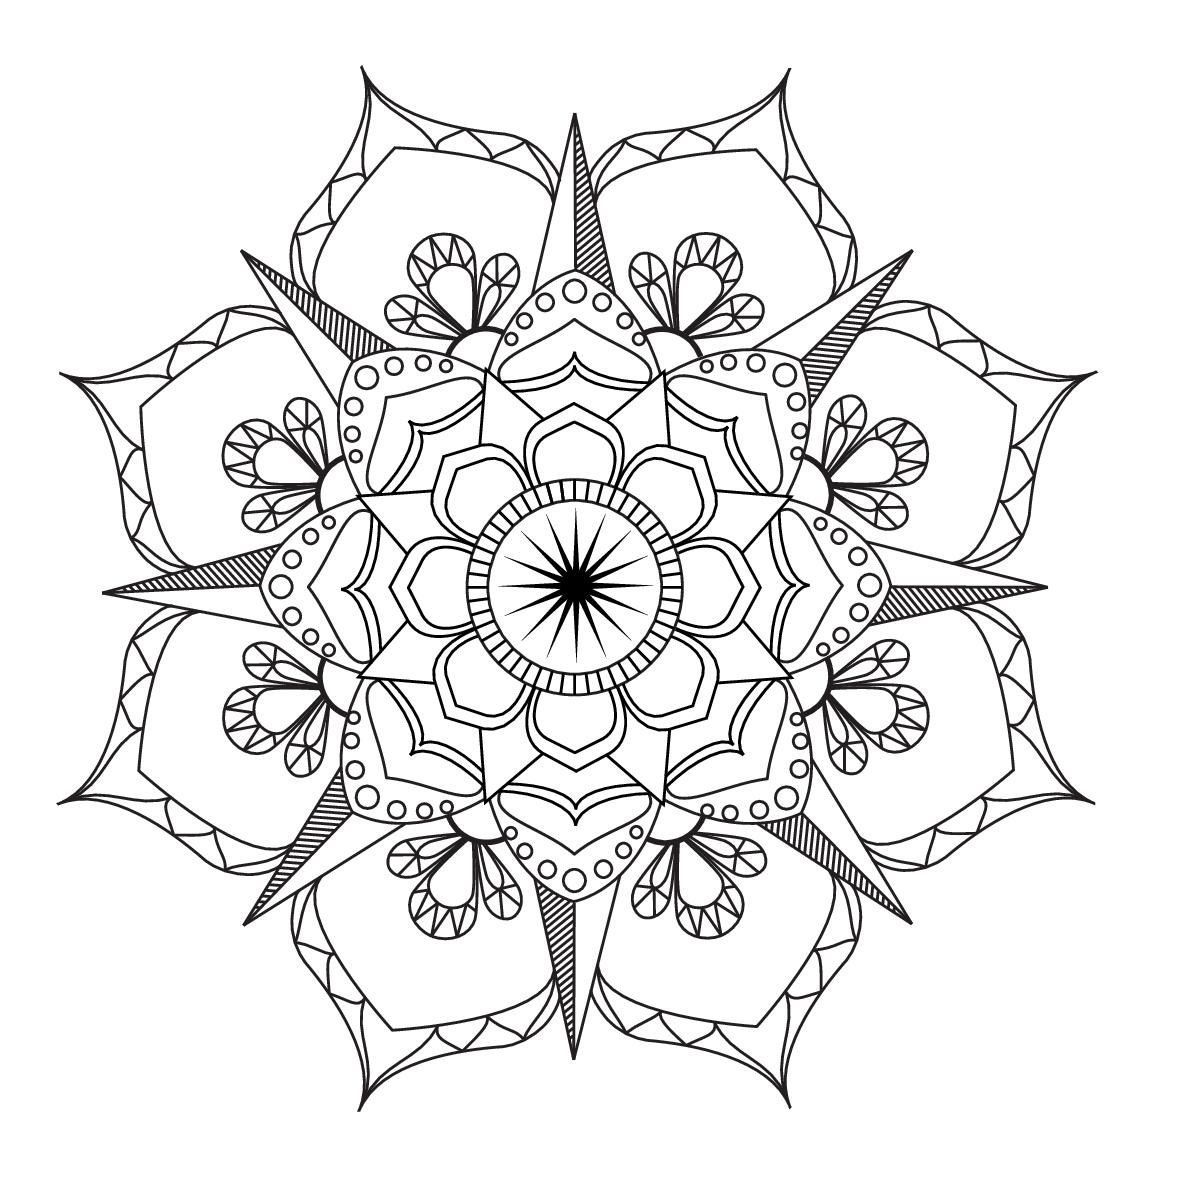 Flower Mandala Coloring Page Adult Coloring Art Therapy Pdf